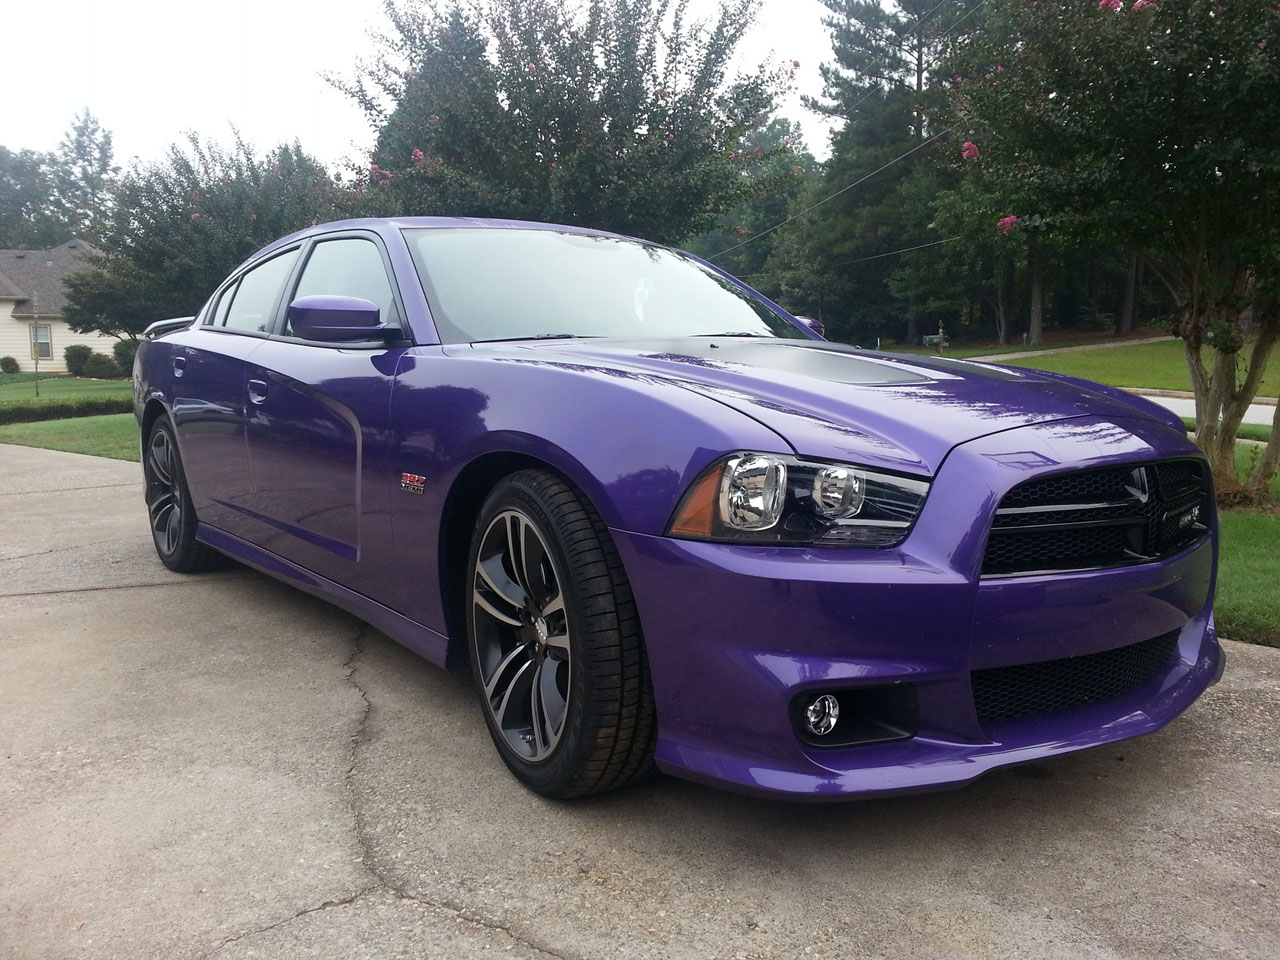 Stock 2013 Dodge Super Bee Srt8 1 4 Mile Drag Racing